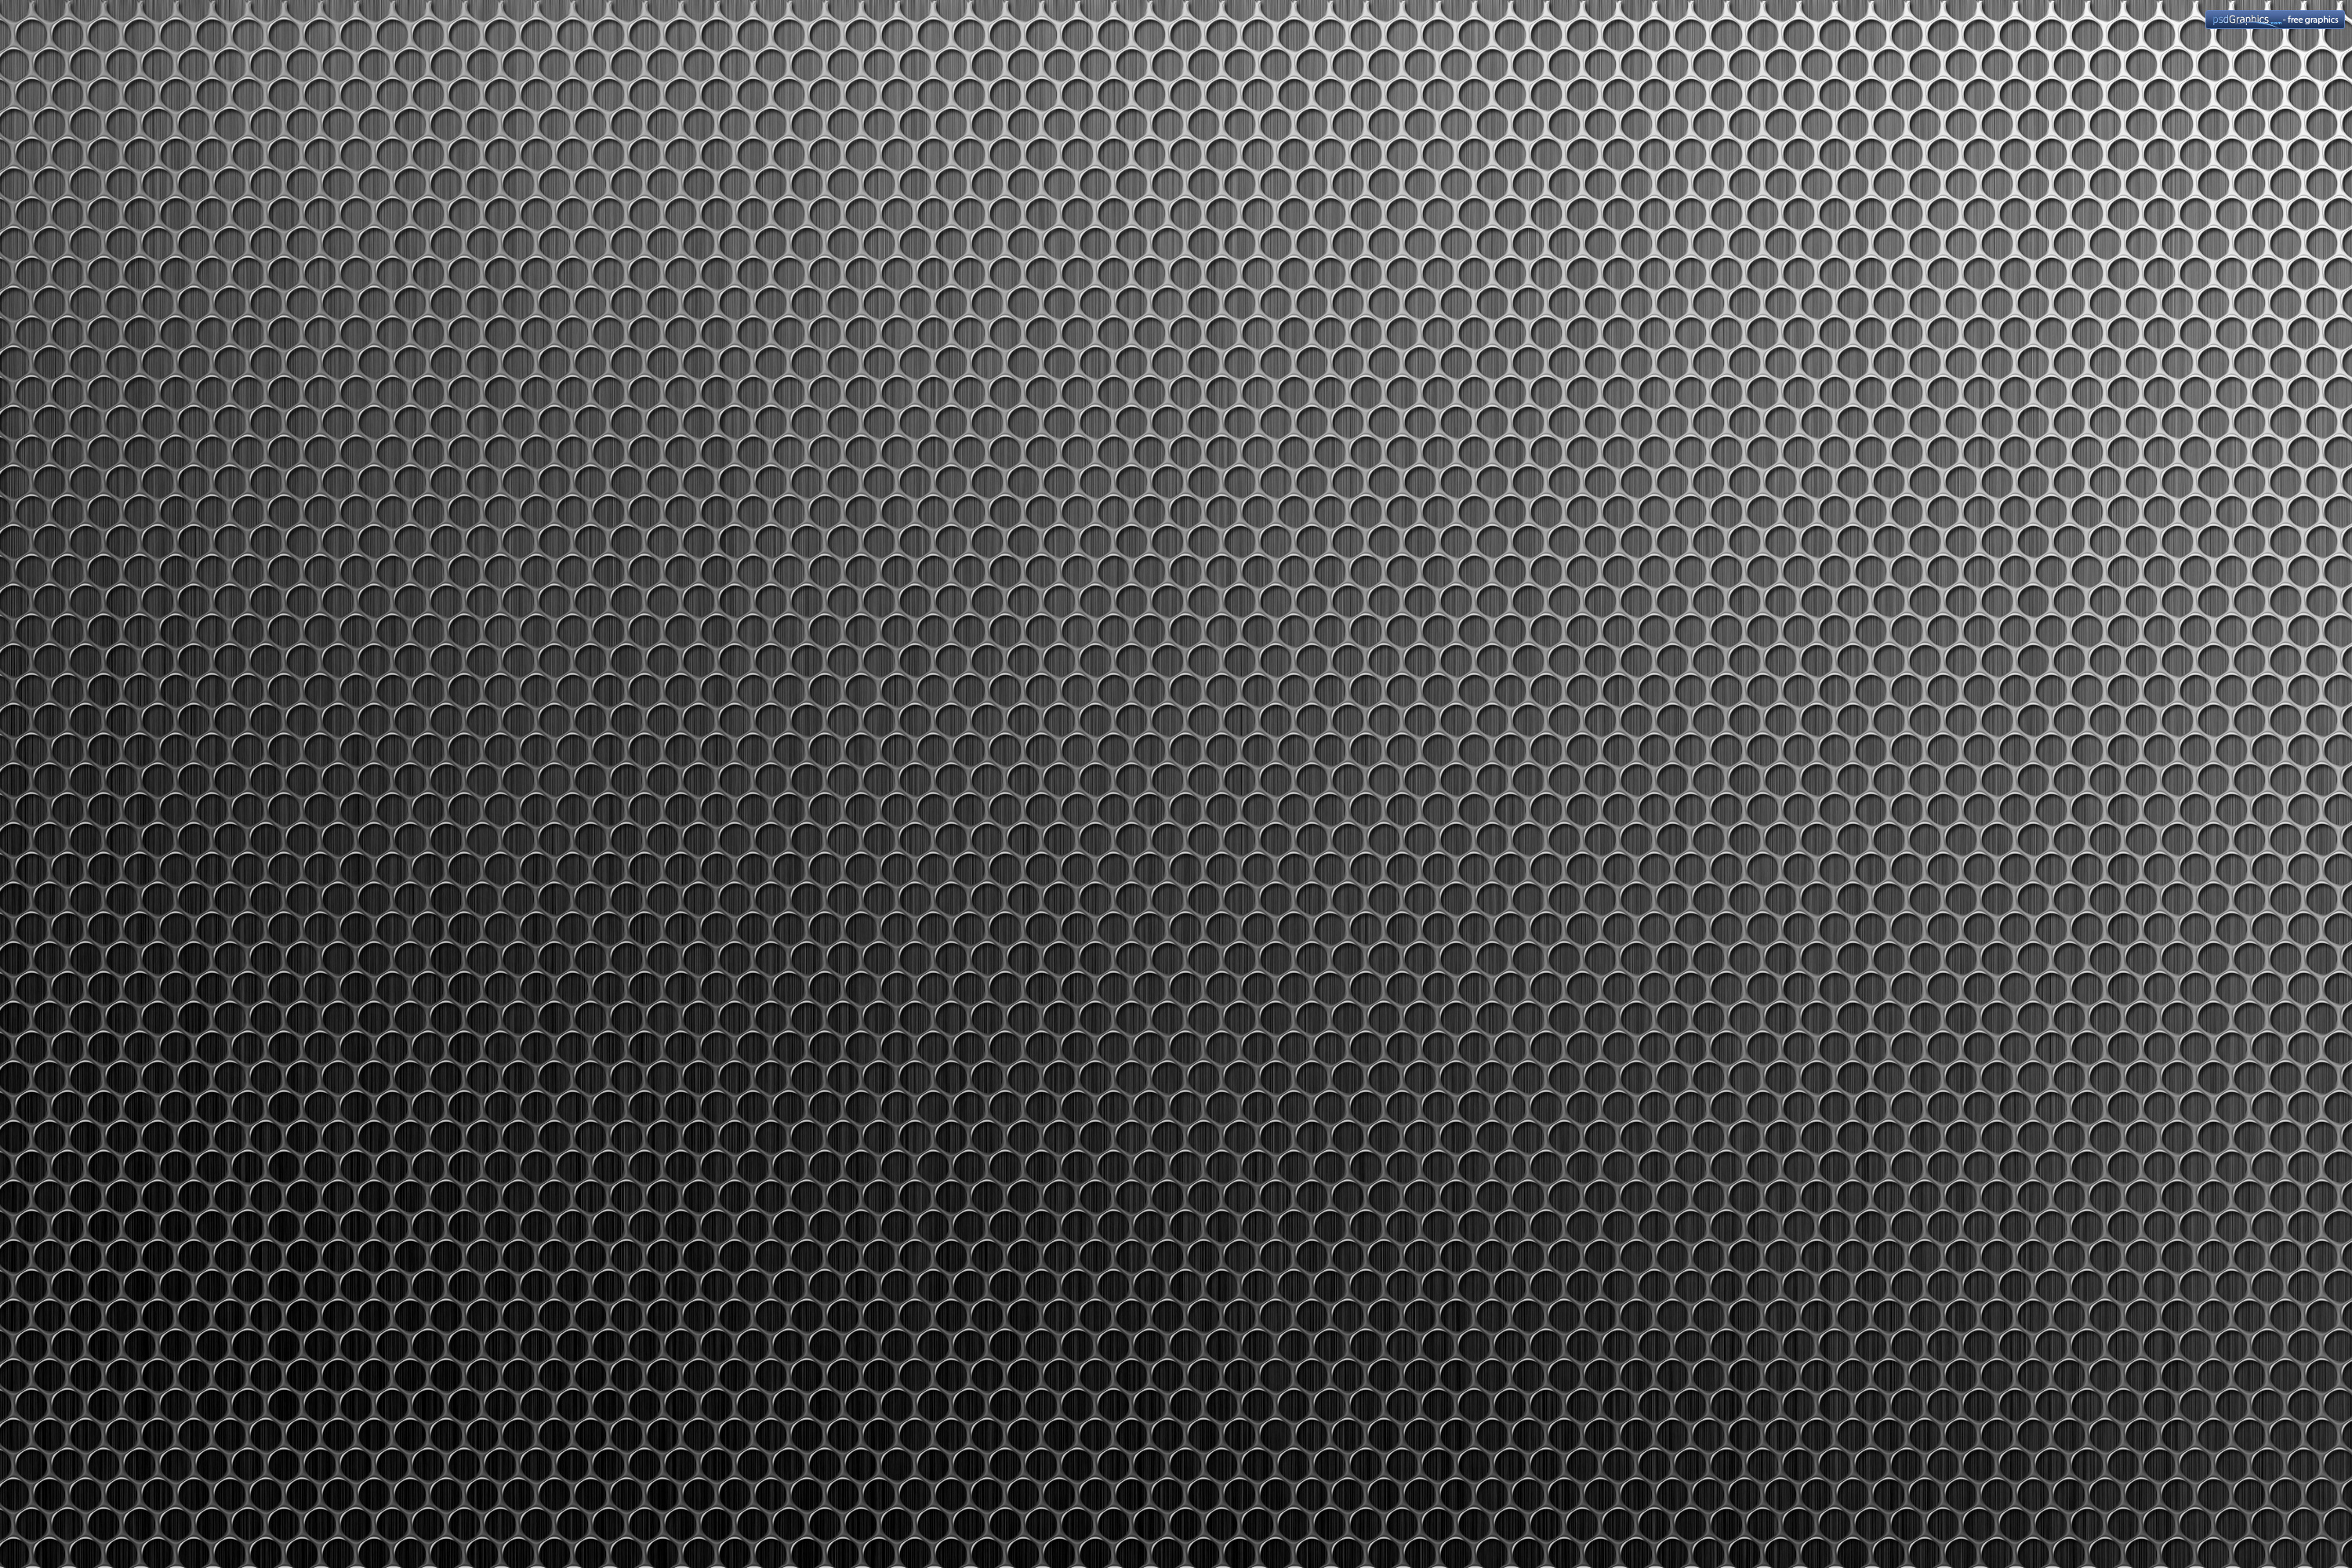 mesh background black brushed metal background radial stainless steel 3000x2000